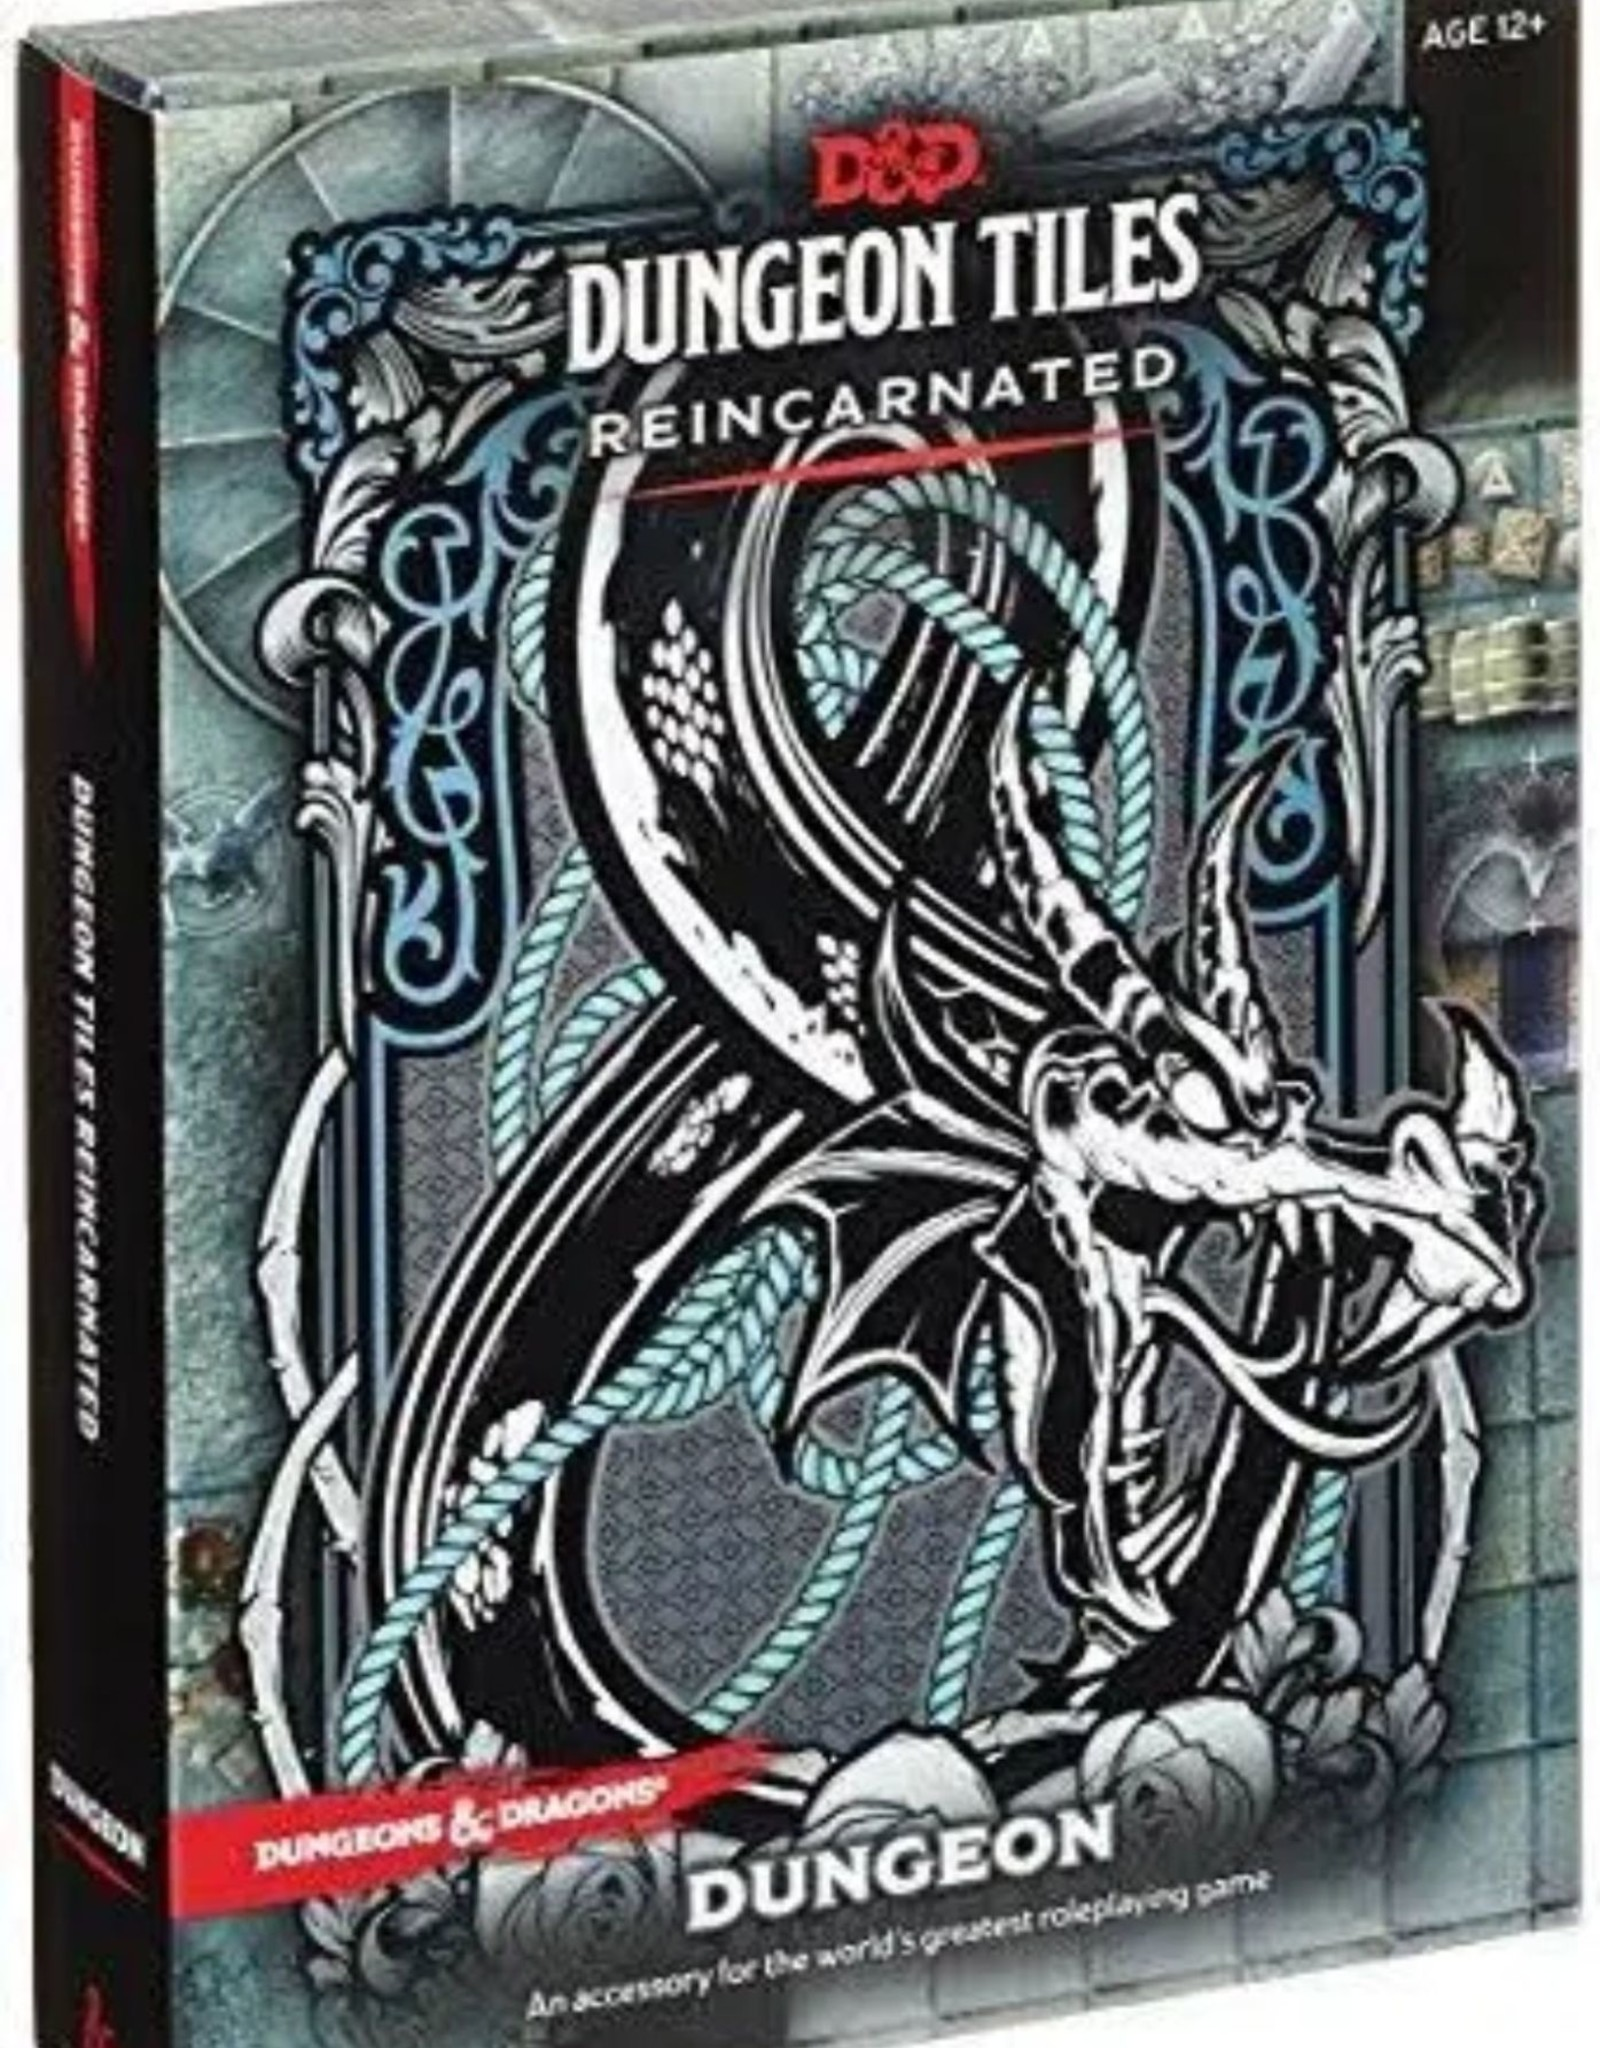 Dungeons & Dragons D&D - Dungeon Tiles Dungeon